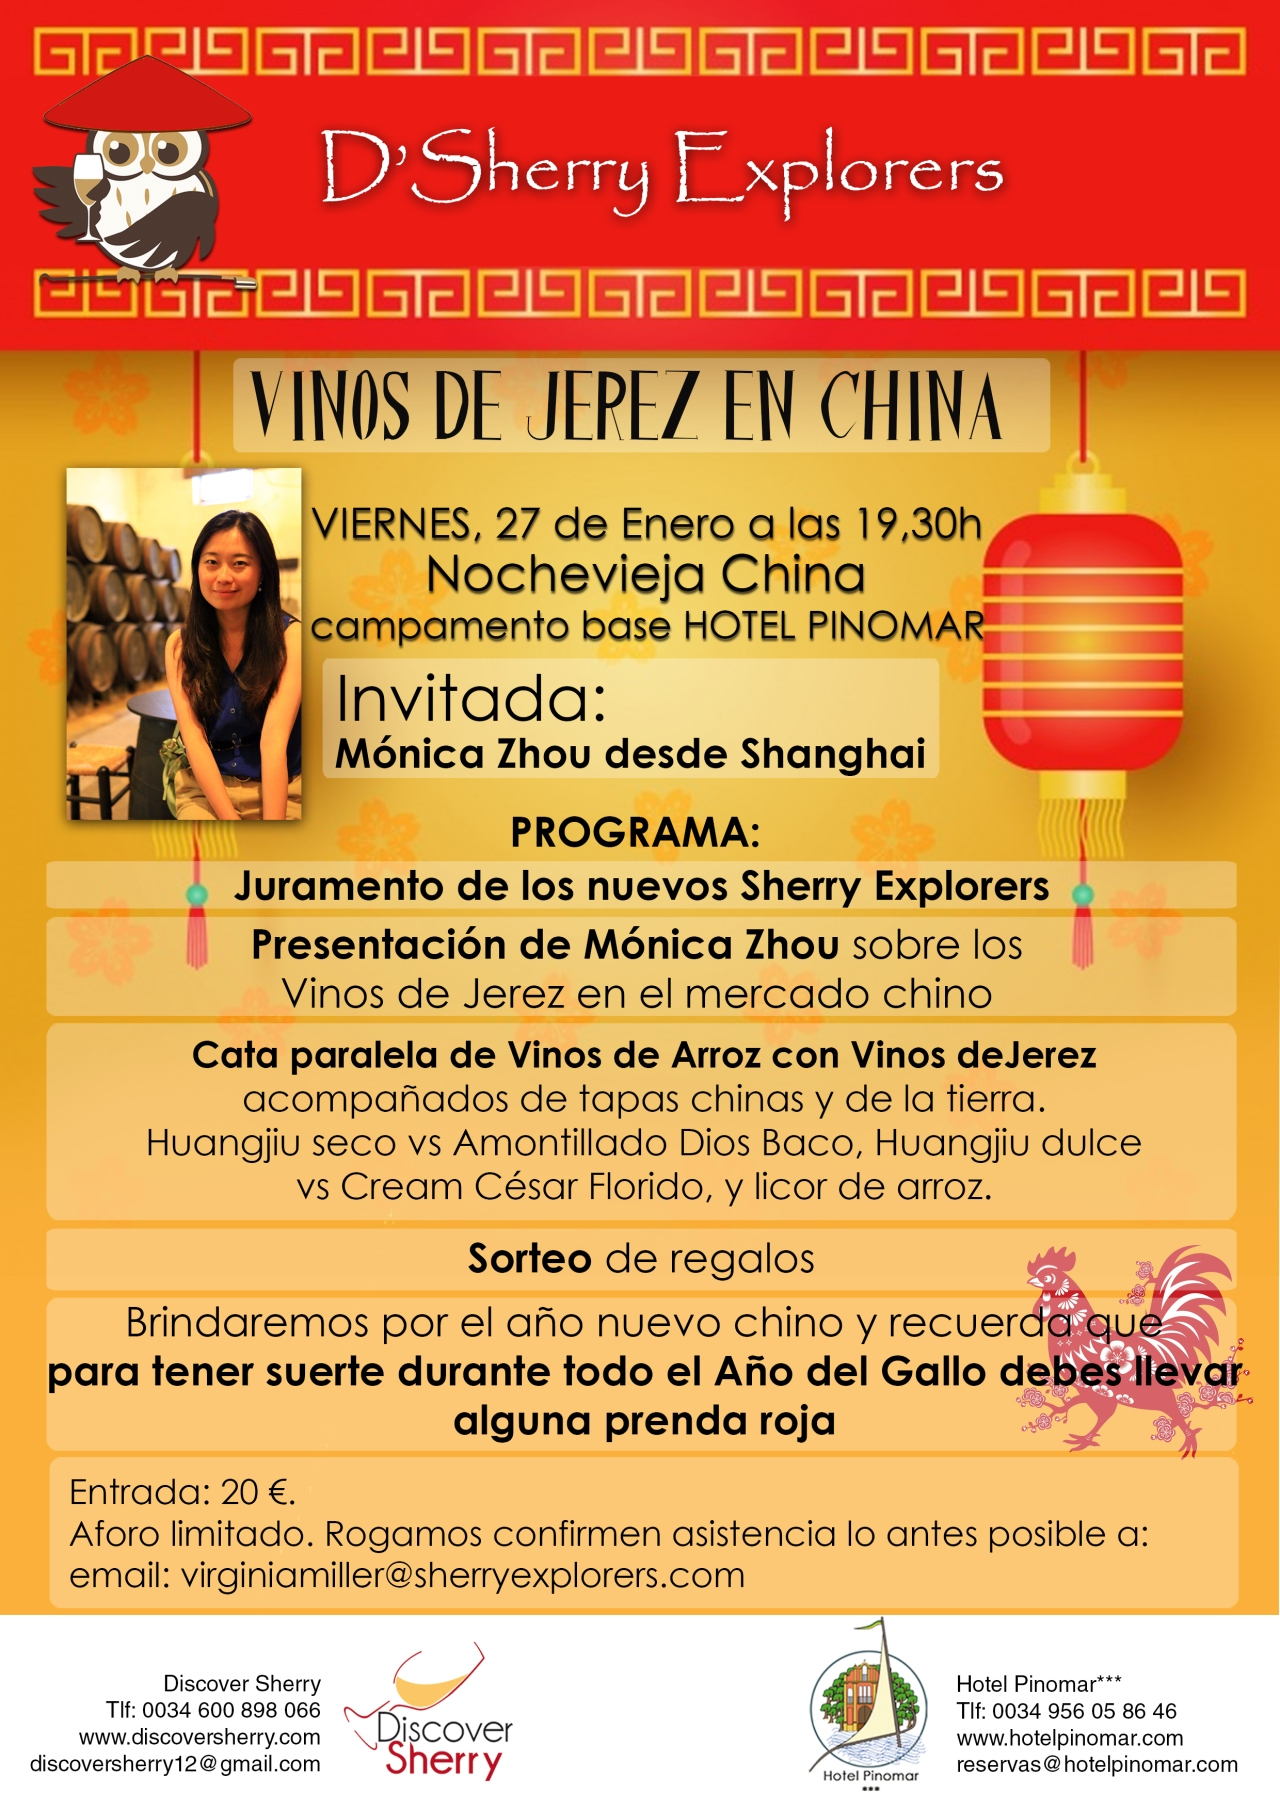 Mónica Zhou invitada a la reunión de los Sherry Explorers en la nochevieja china / Mónica Zhou will be D´Sherry Explorers´ guest on Chinese New Year´s eve